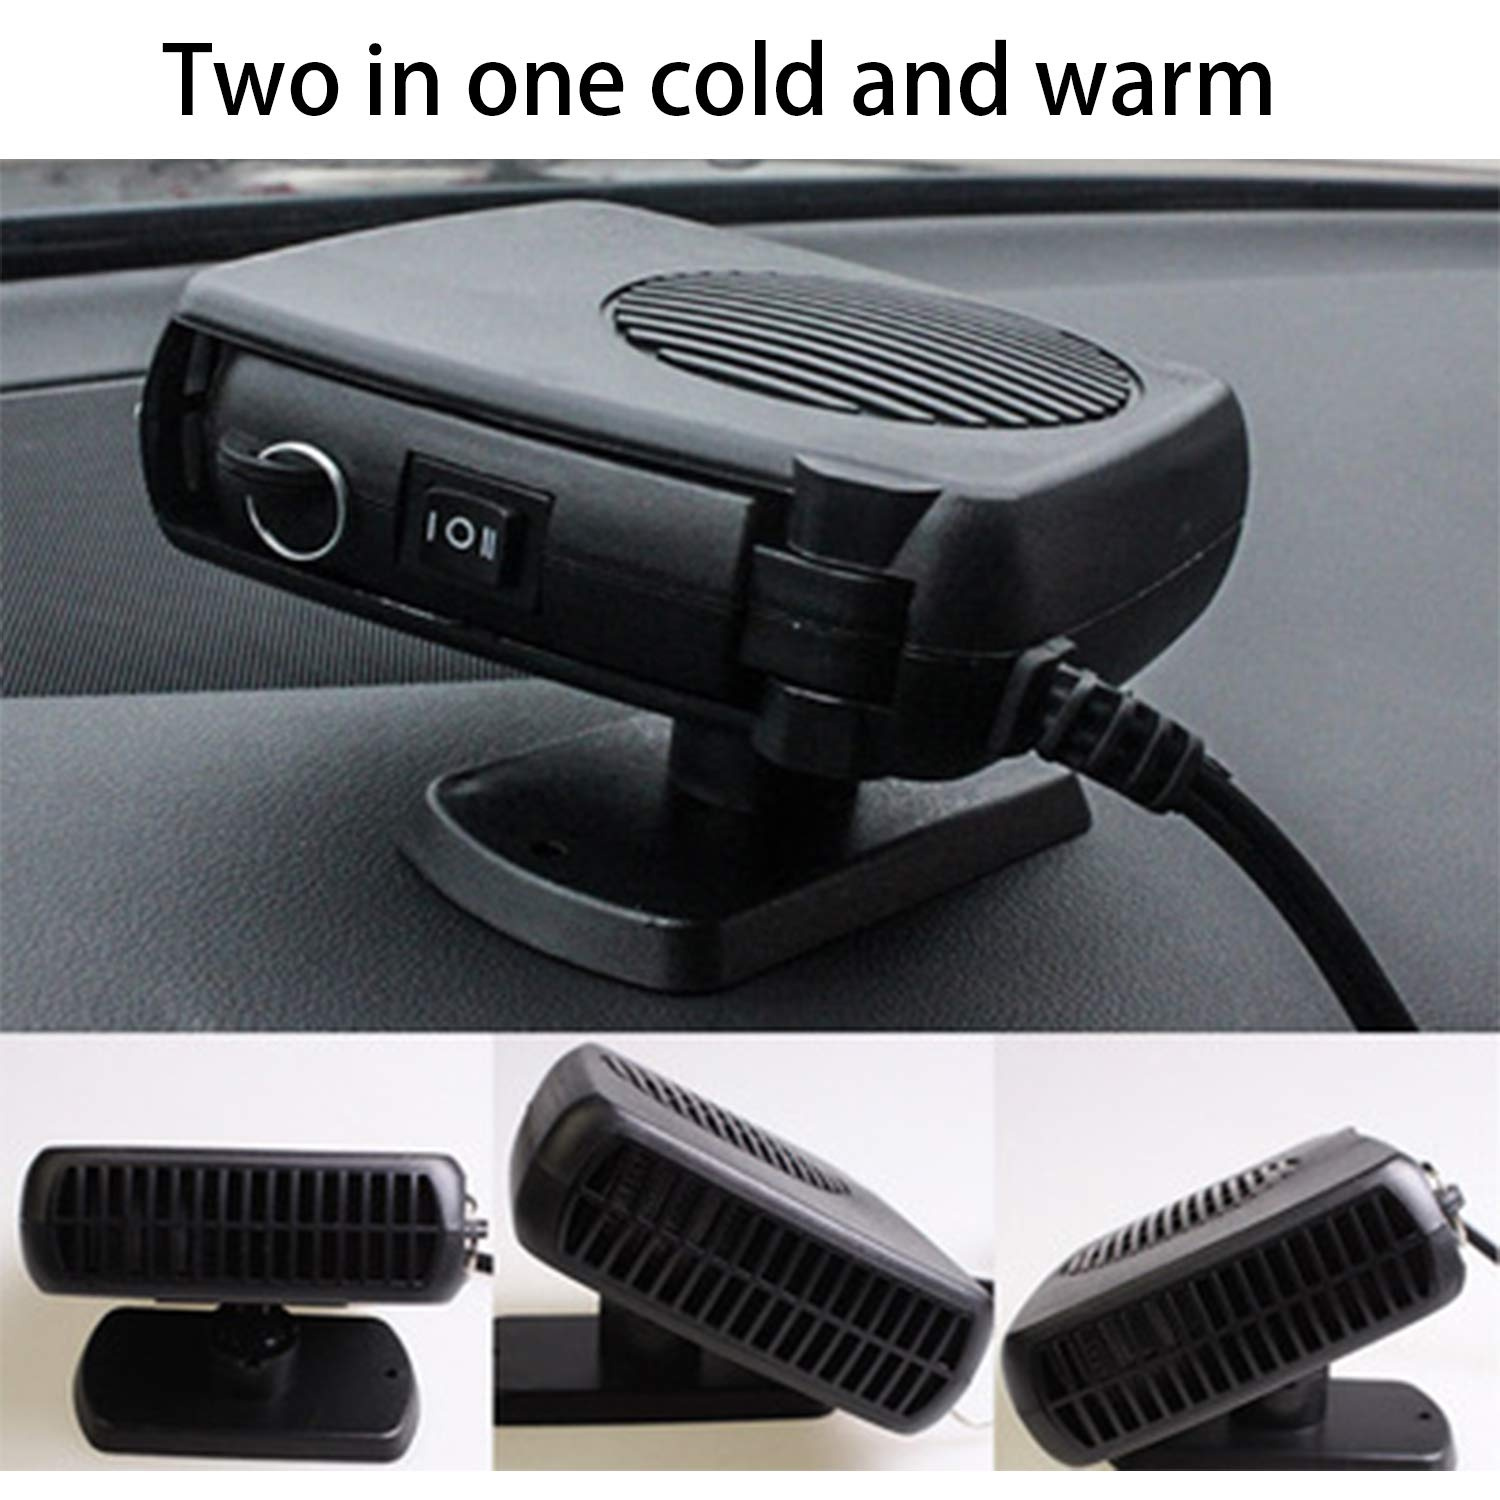 Portable Car Heater Windshield Defroster 12v Car Two-in-one Air Heater Car Heater Black 60w by HEIFEN